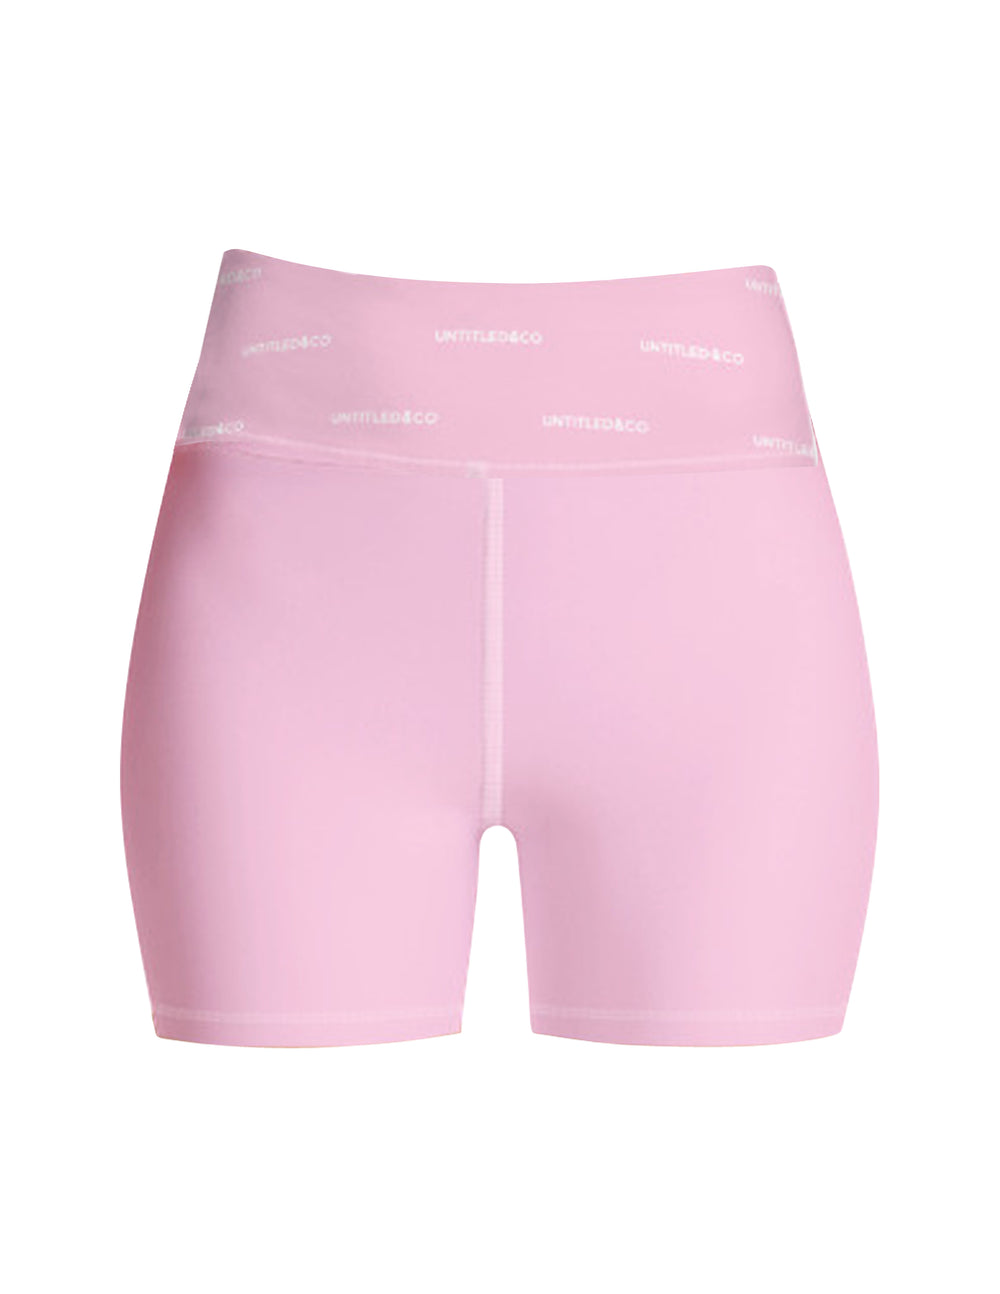 Rylee Shorts in Pink with White